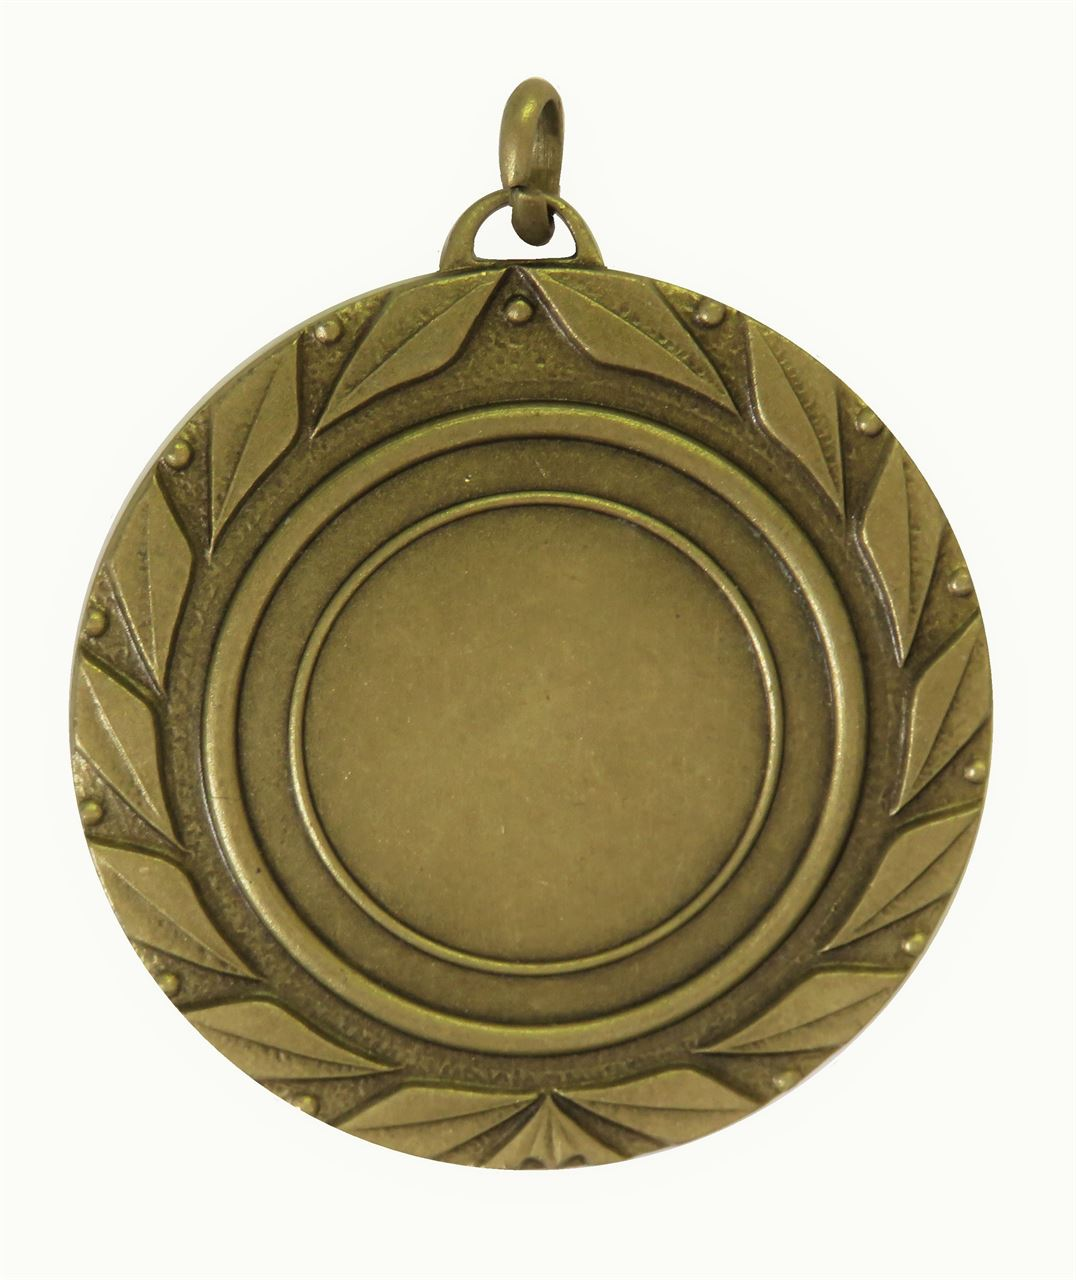 Bronze Quality Laurel Leaf Medal (size: 50mm) - 5705E